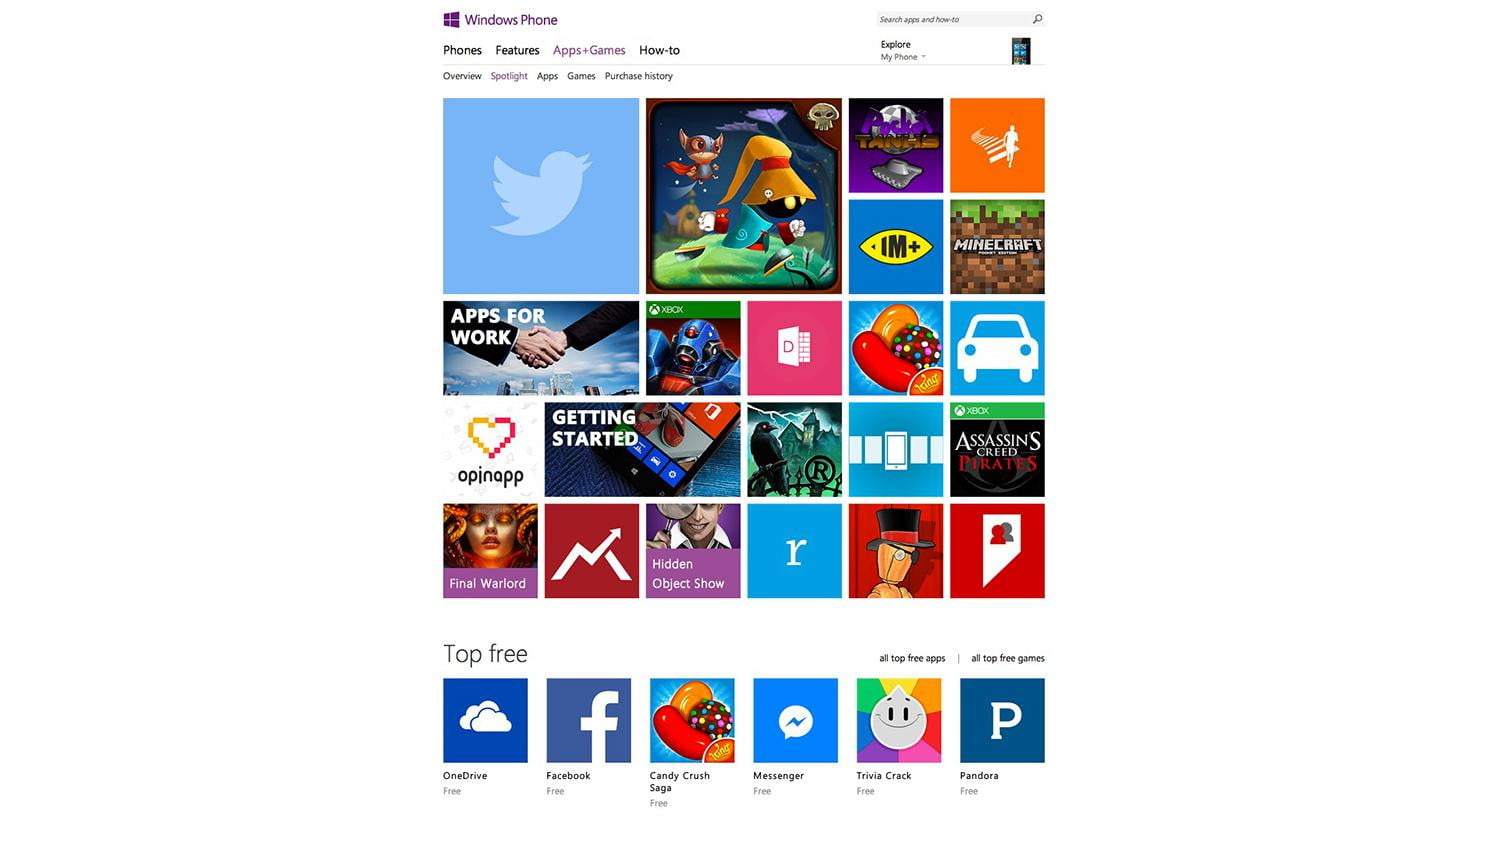 windows 10 for mobile everything you need to know